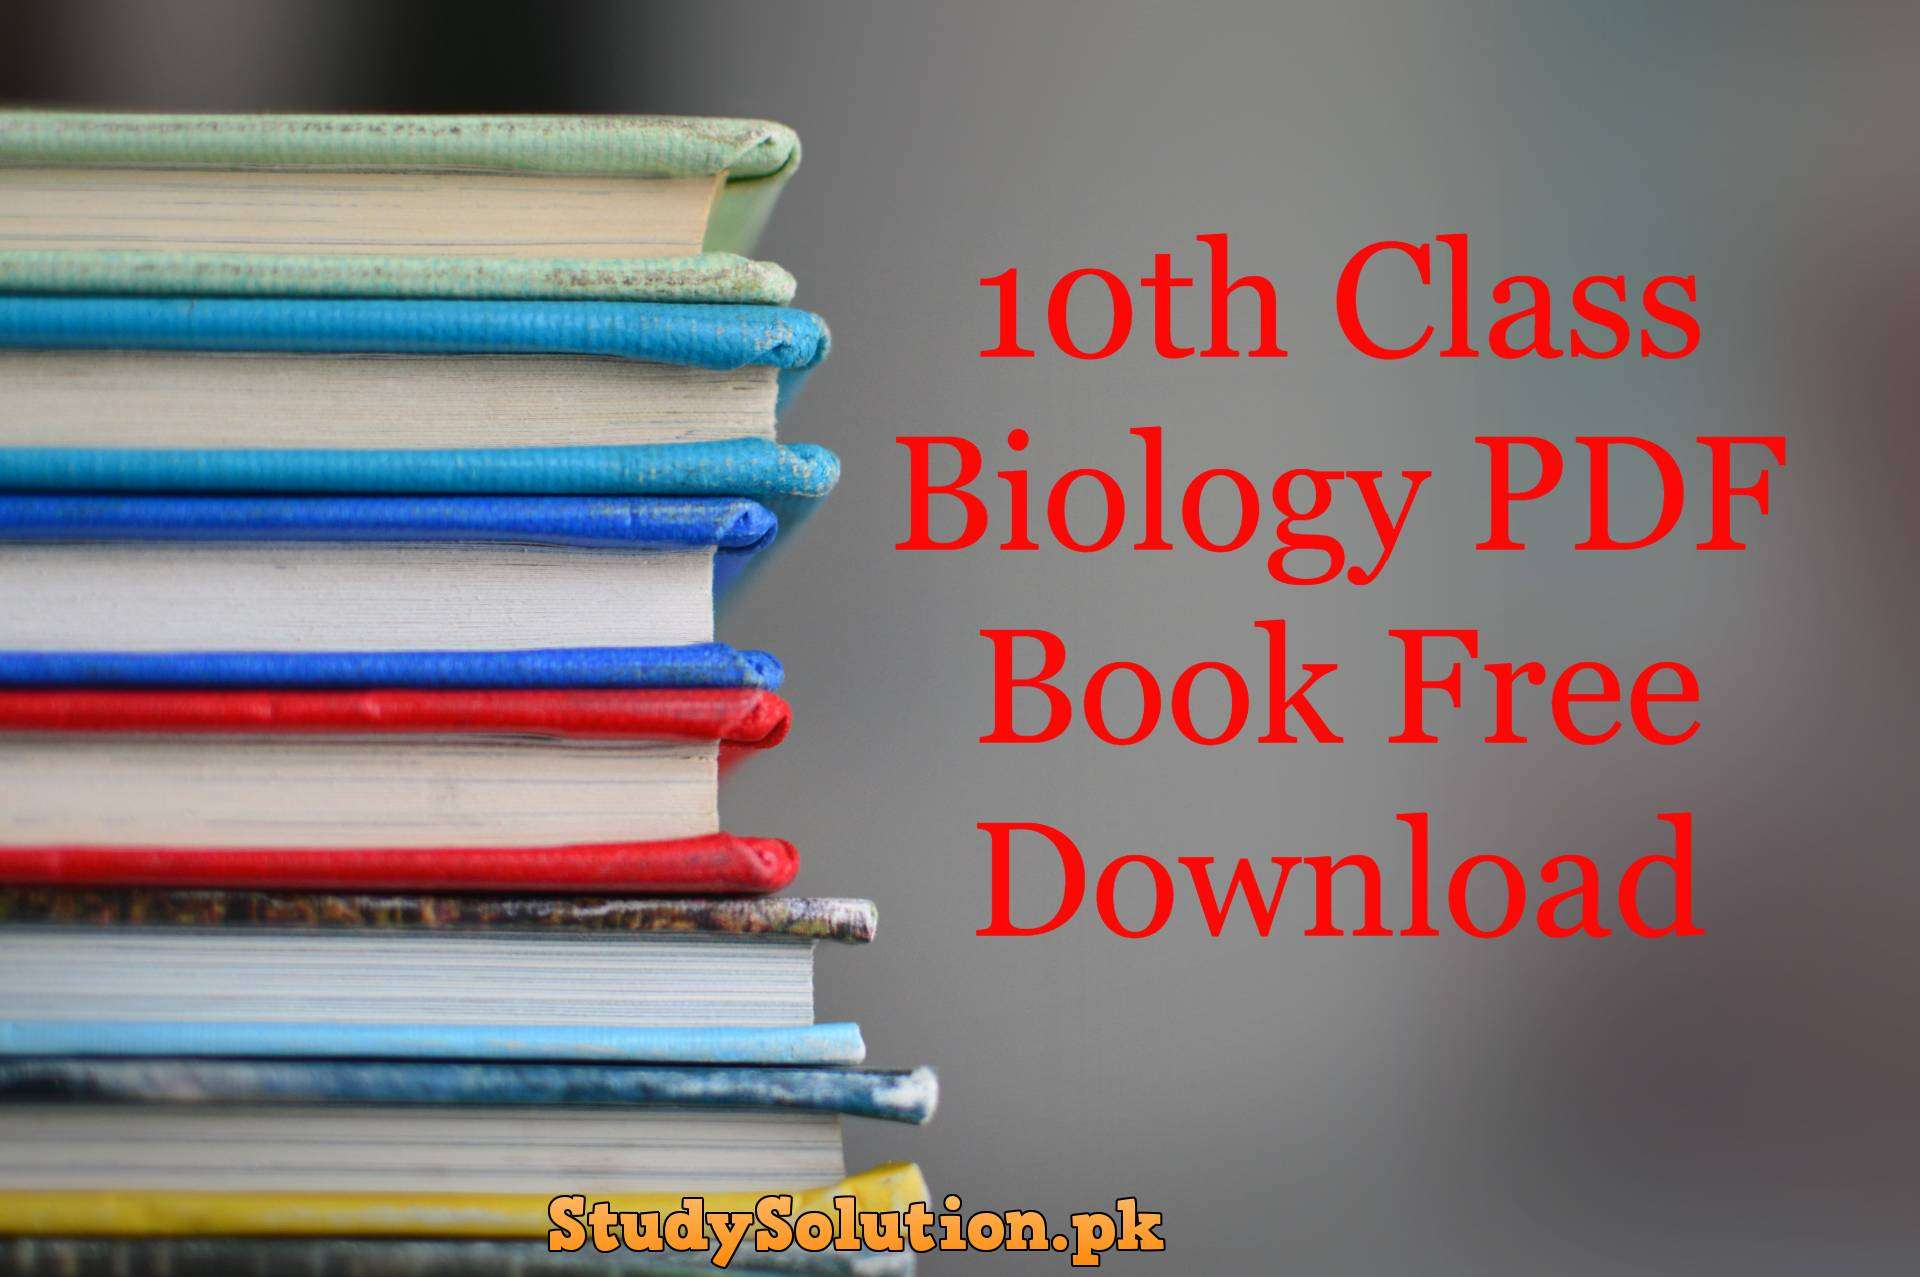 10th Class Biology PDF Book Free Download